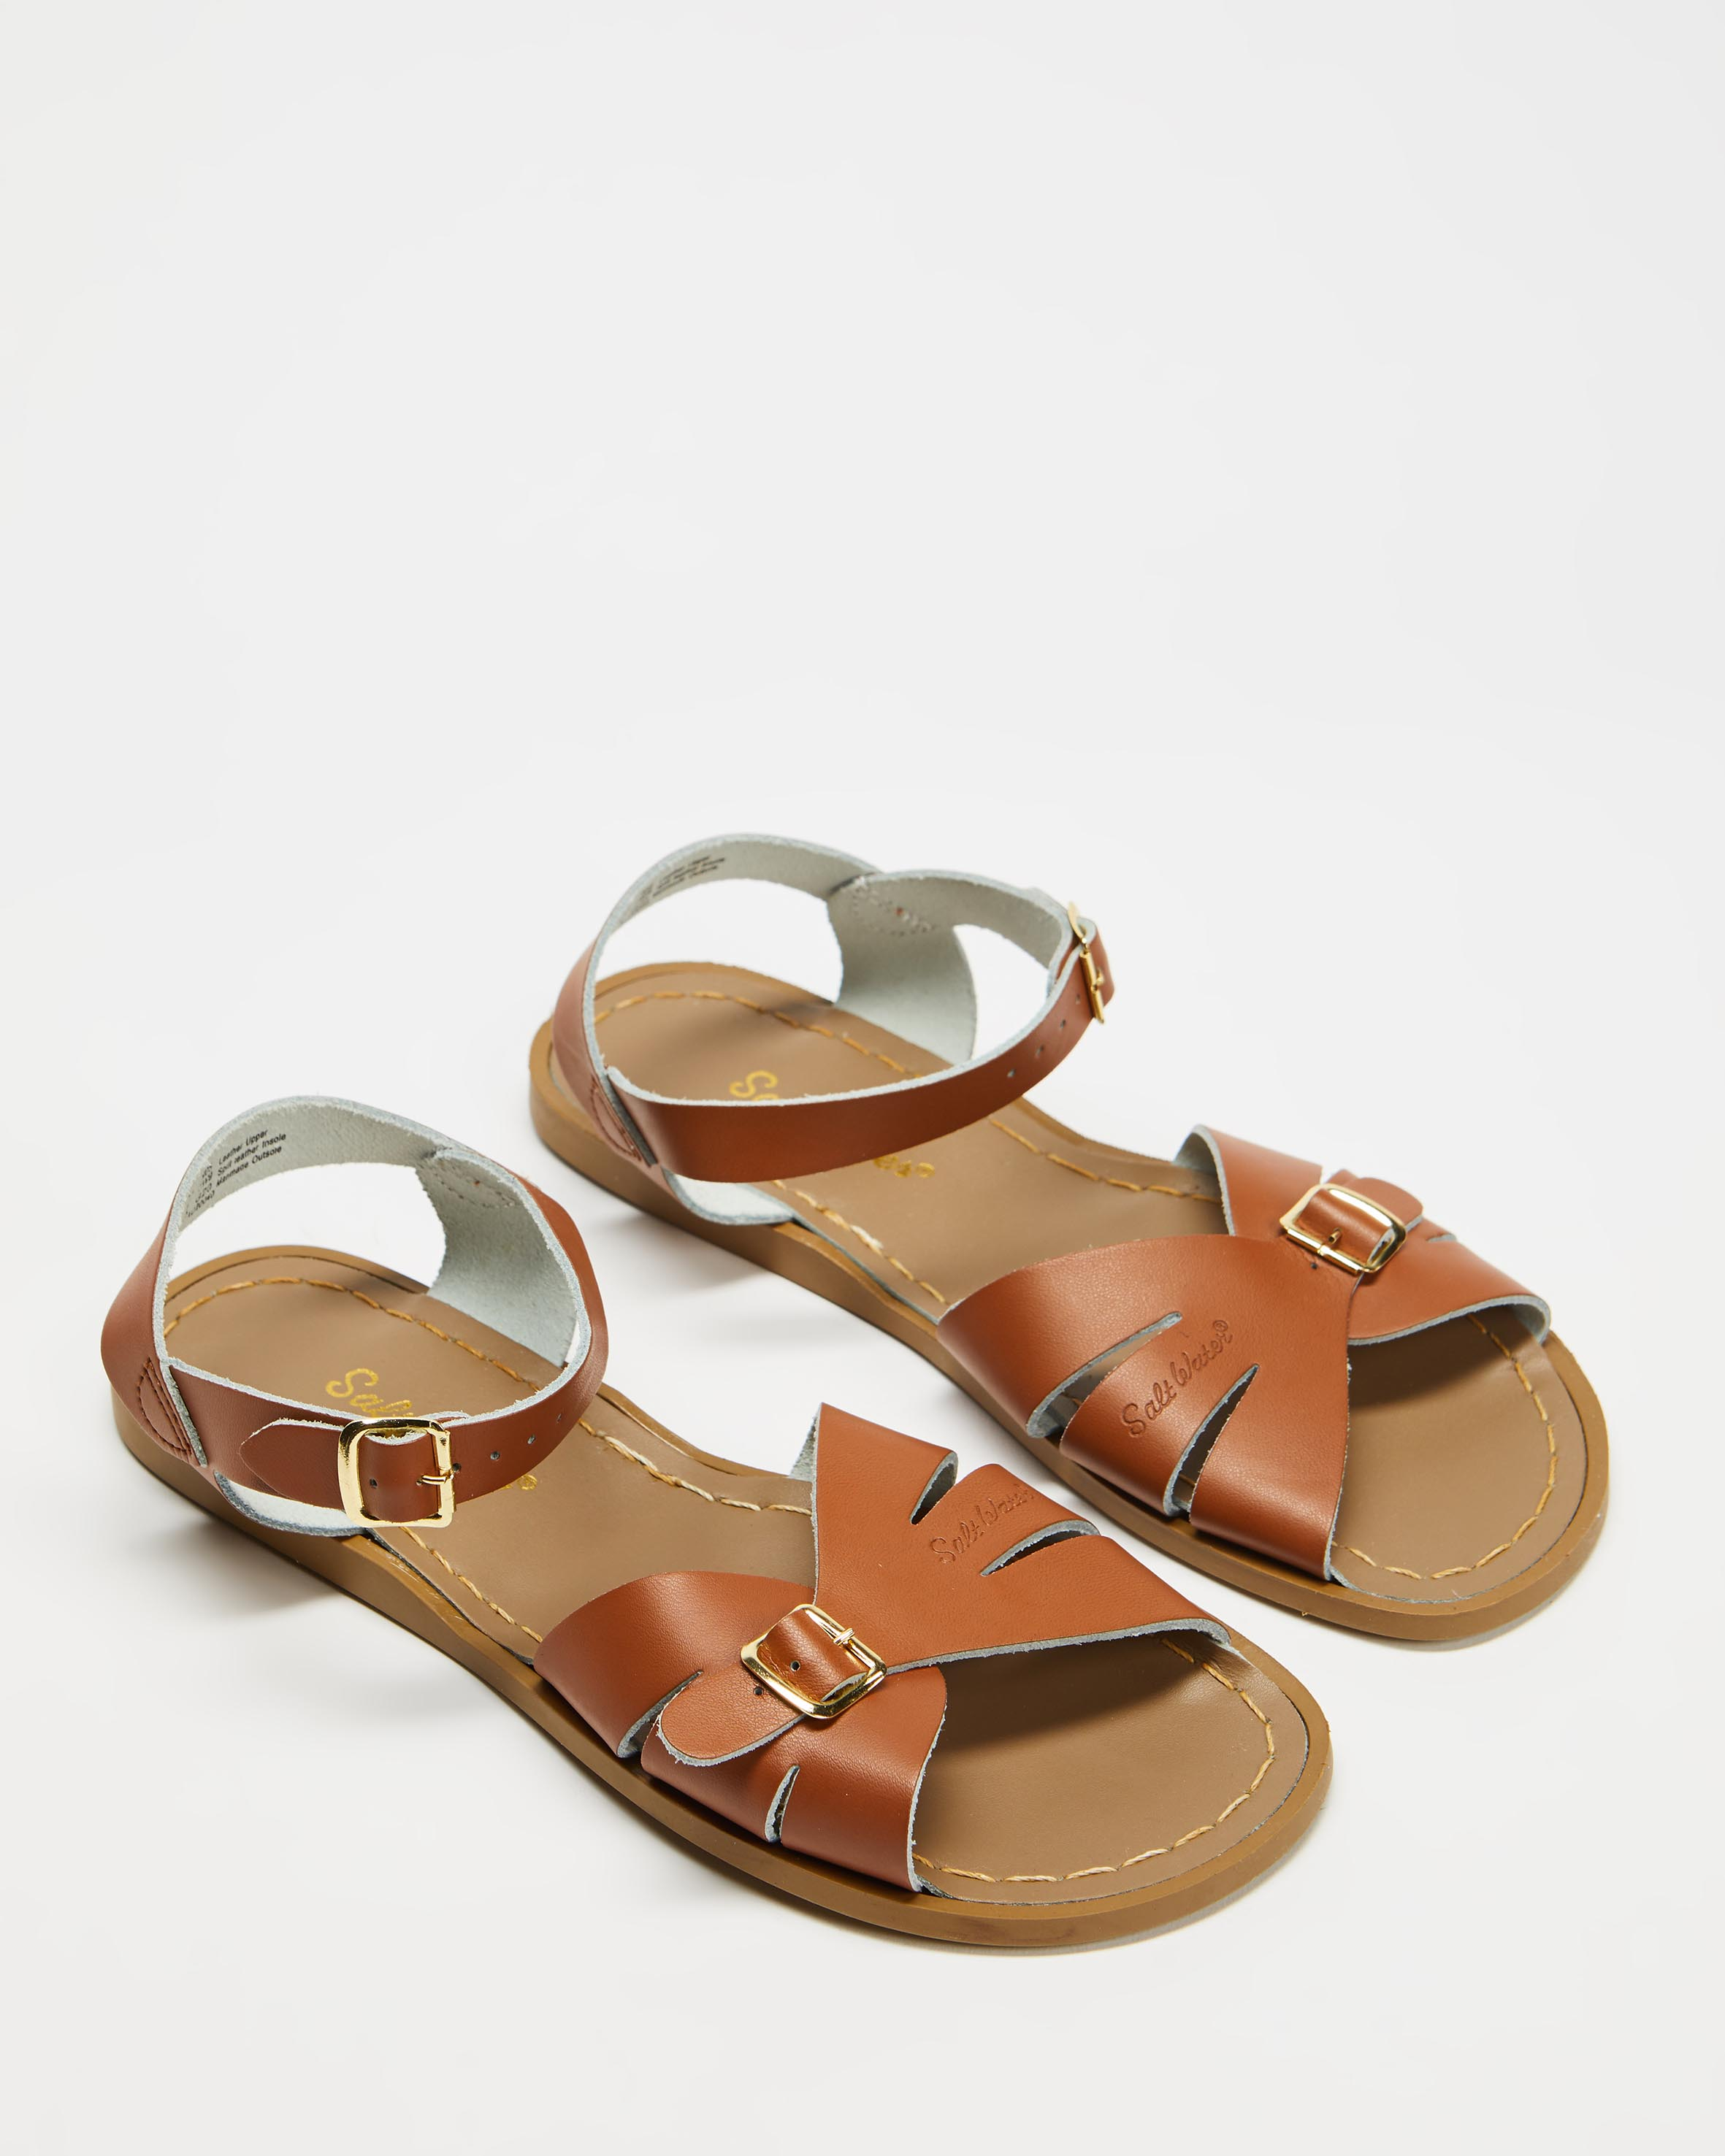 Where can i buy saltwater sandals in melbourne